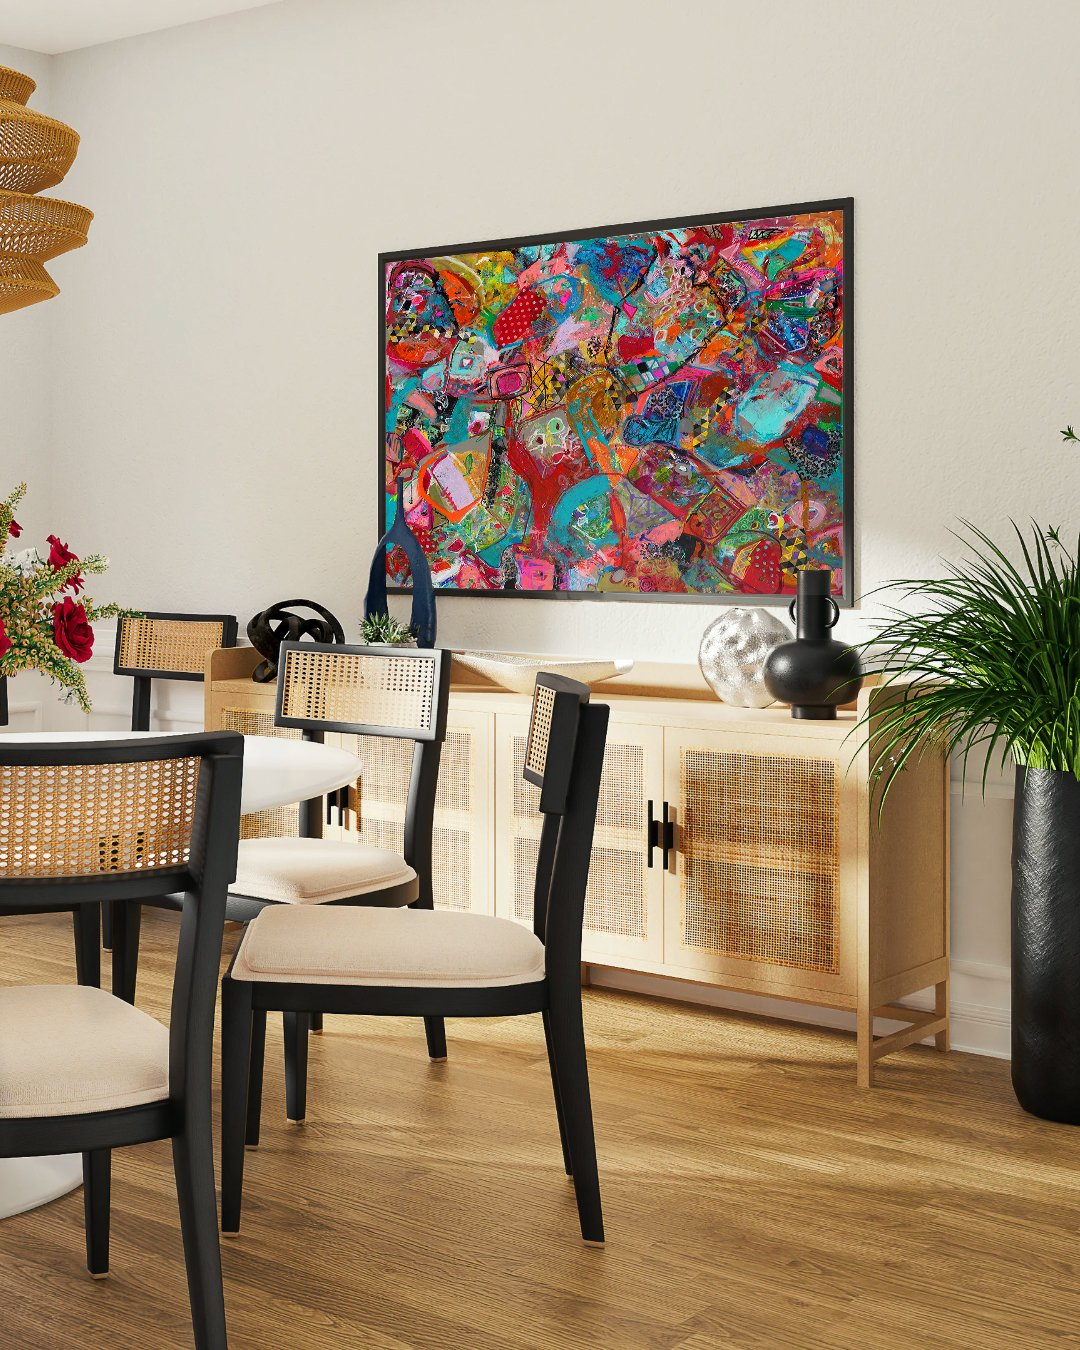 Abstract wall art, Canvas painting, Interior design inspiration, Home revamp